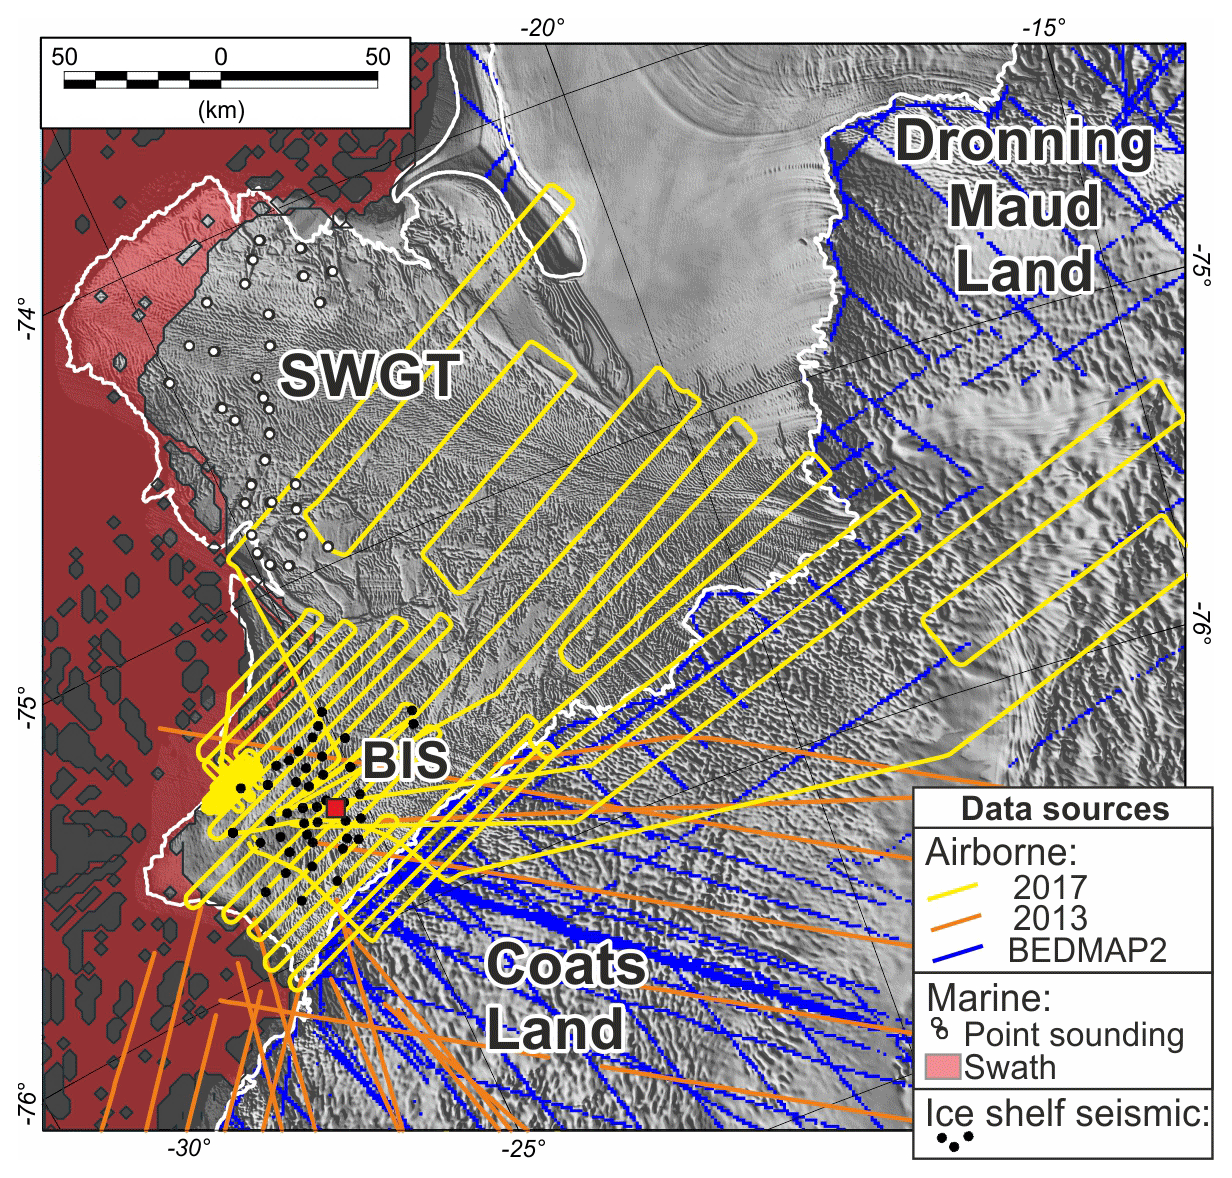 TC - Past and future dynamics of the Brunt Ice Shelf from seabed